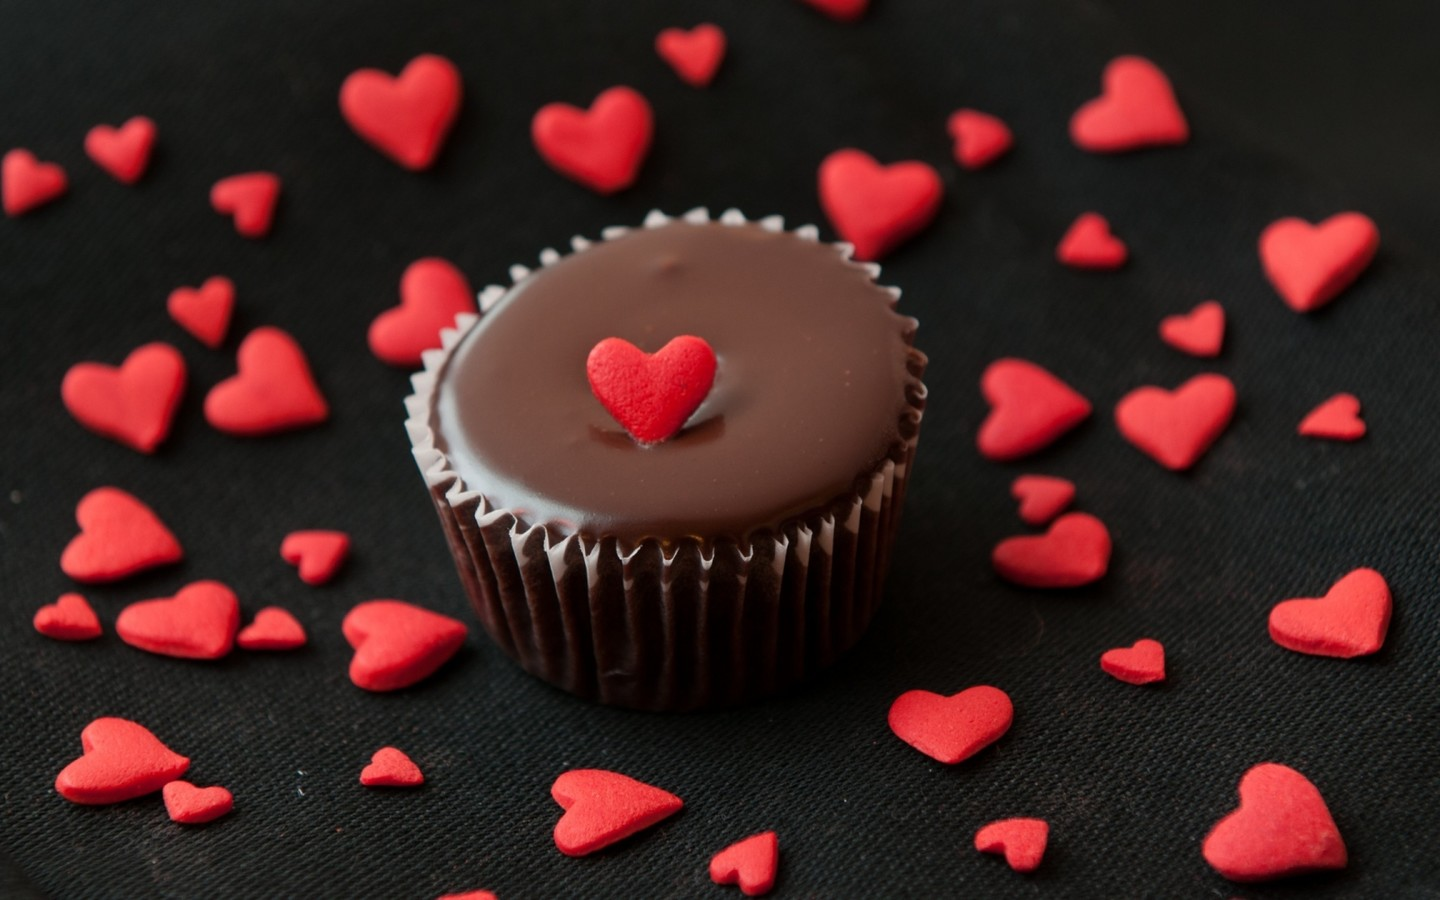 a-chocolate-muffin-with-a-red-heart_1440x900